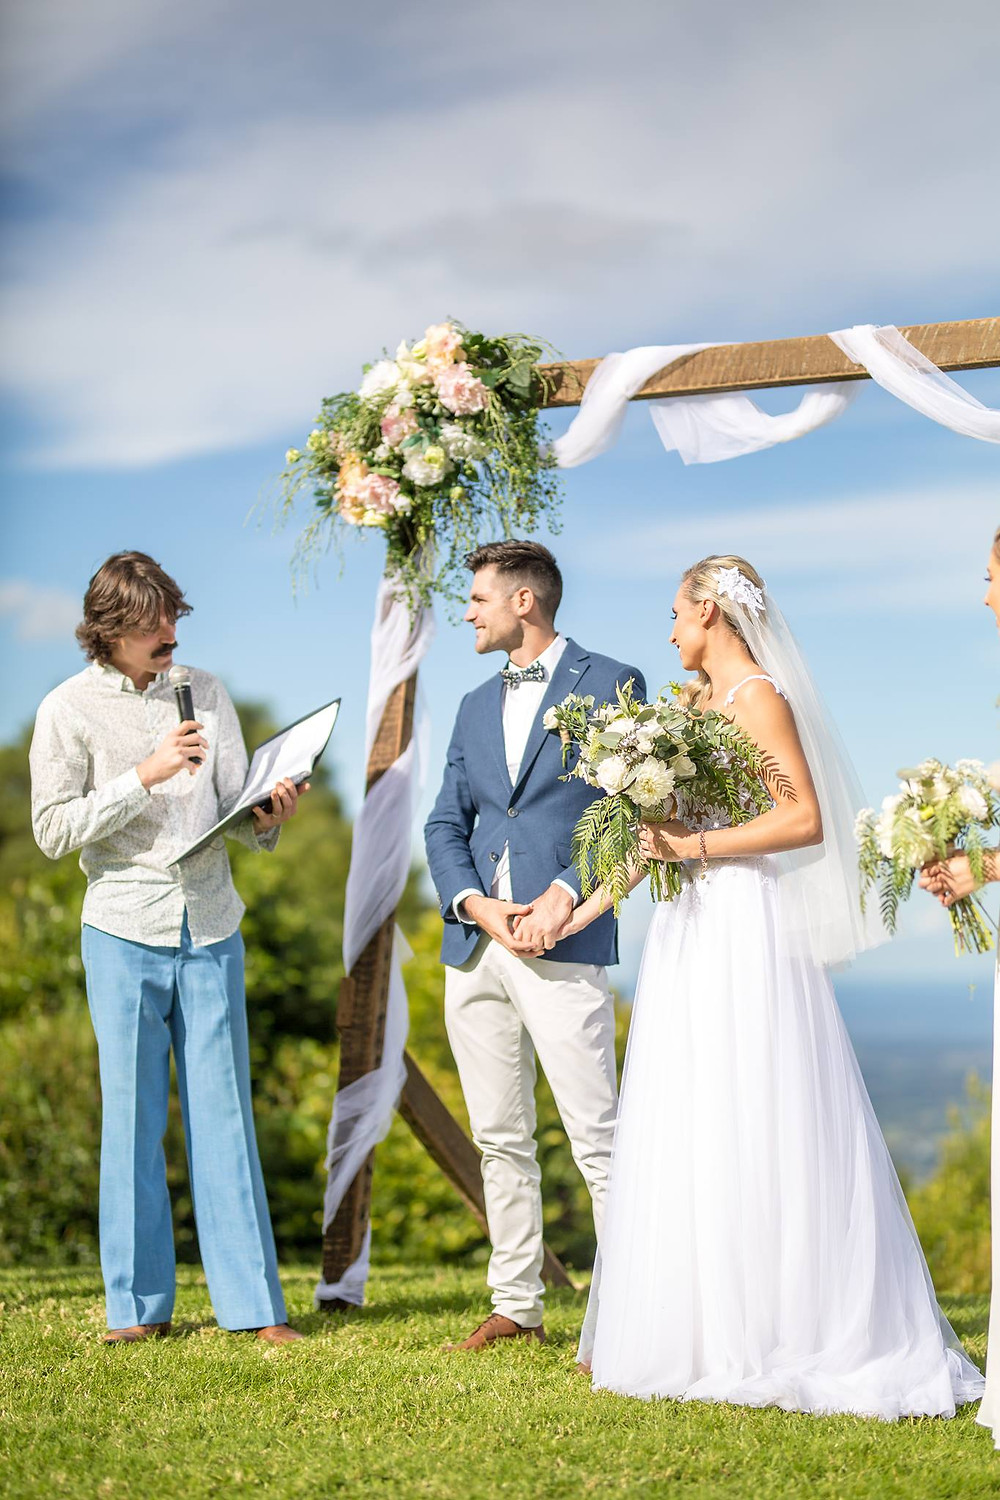 Brendan and Chloe's south coast ceremony by Matthew Aston Photography